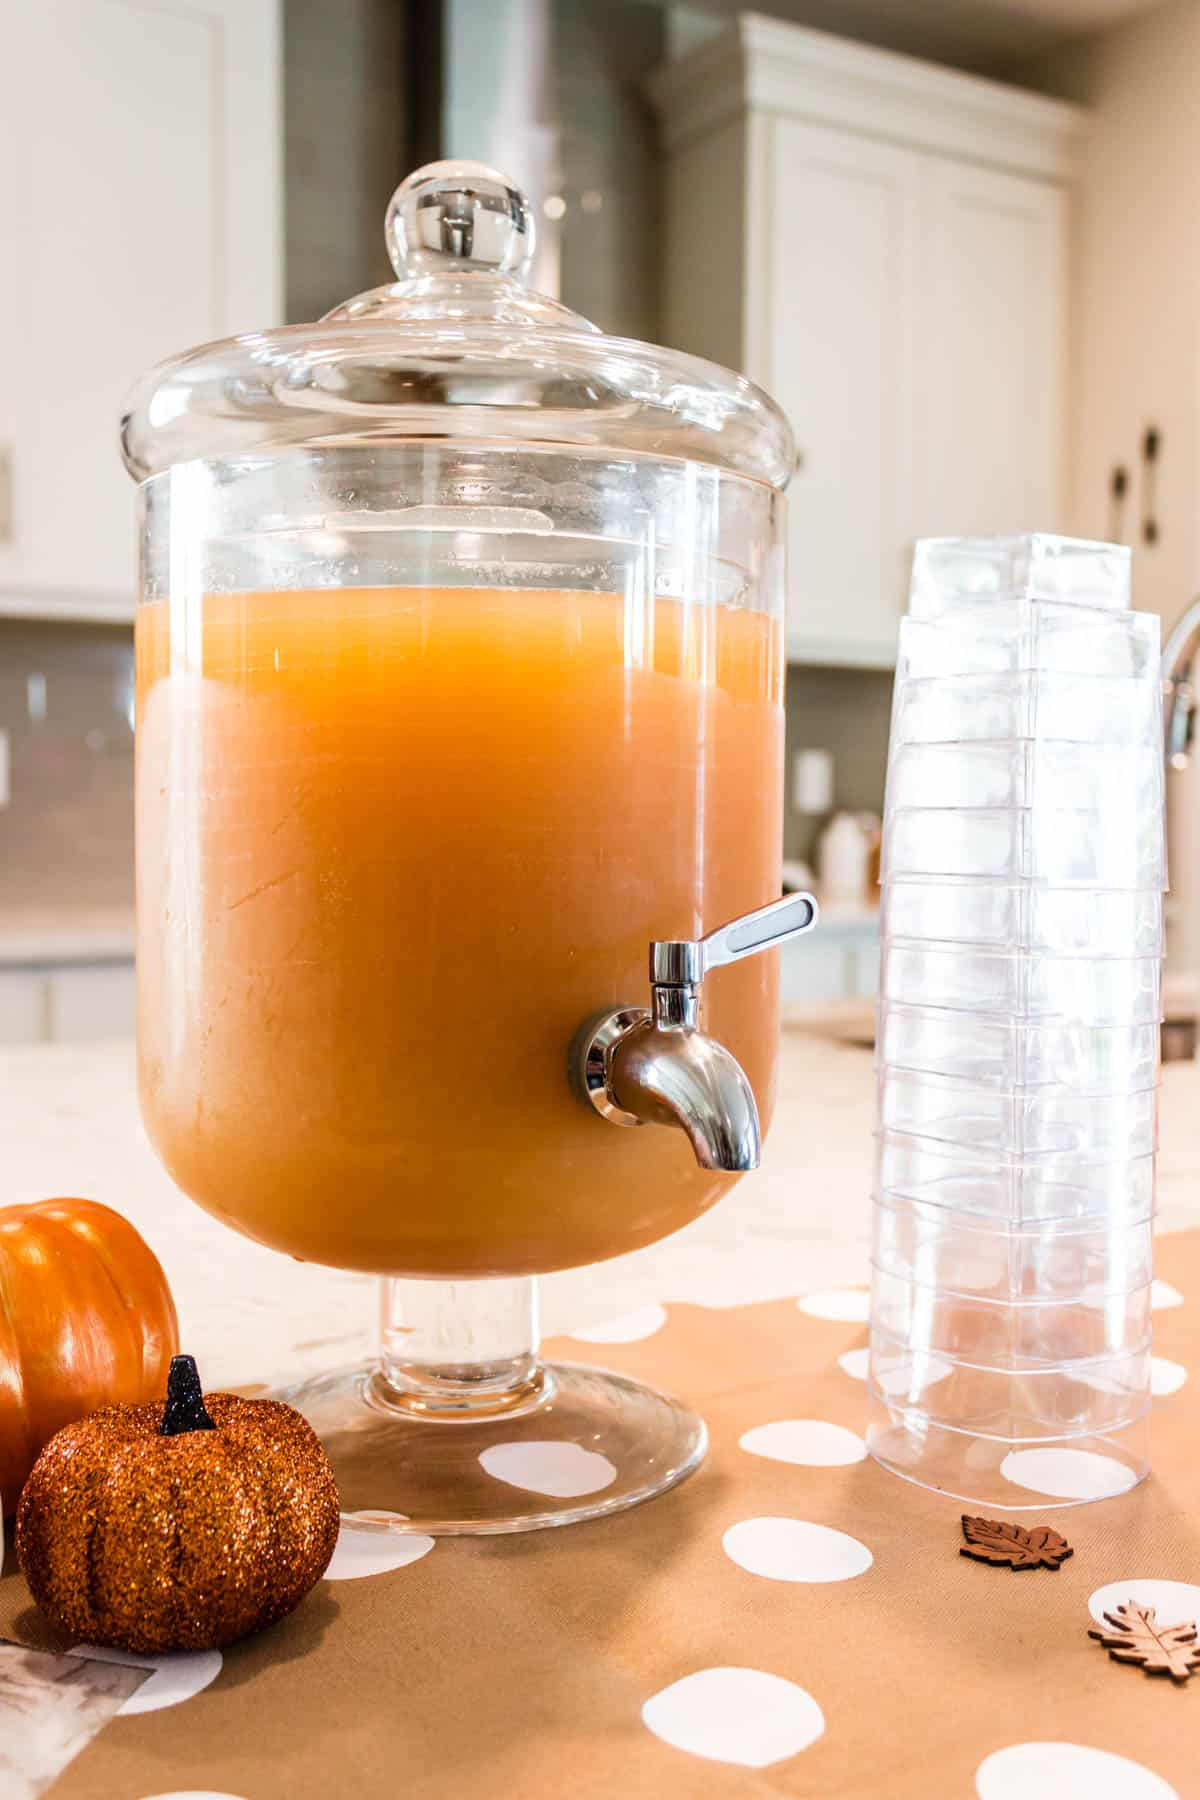 Apple cider punch in a glass beverage dispenser.